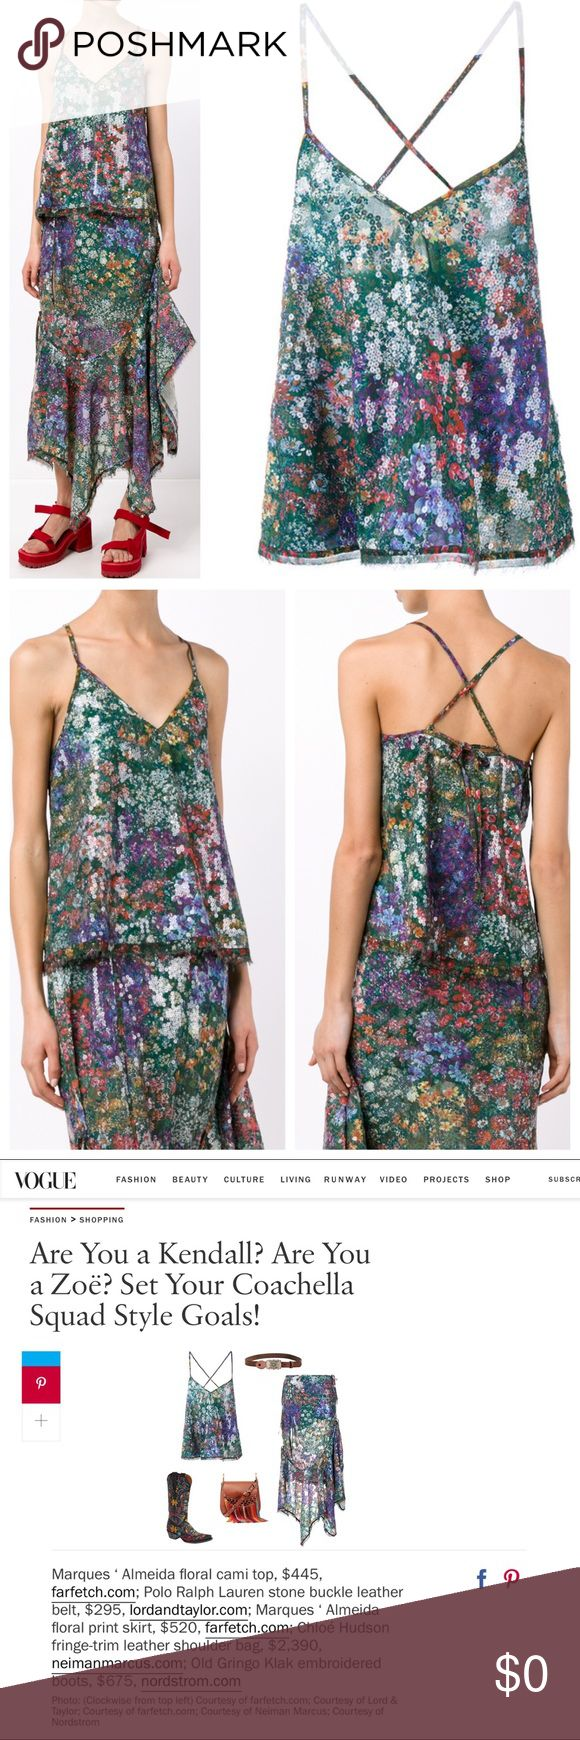 Marques' Almeida Printed Sequin Cami Floral Top COMING SOON!  Exquisite, pristine condition, this stunning multi-coloured Marques Almeida printed floral top is from the designer's Spring/Summer 2016 Resort collection. Feminine and elegant, the loose-fitting piece is uplifted by the sexy criss-cross back and subtle sequin detailing that gives it a unique shine. Pair with skinny jeans or any flowy skirt for the ultimate boho chic look.  As seen in Vogue for Coachella outfits. Measurements and…